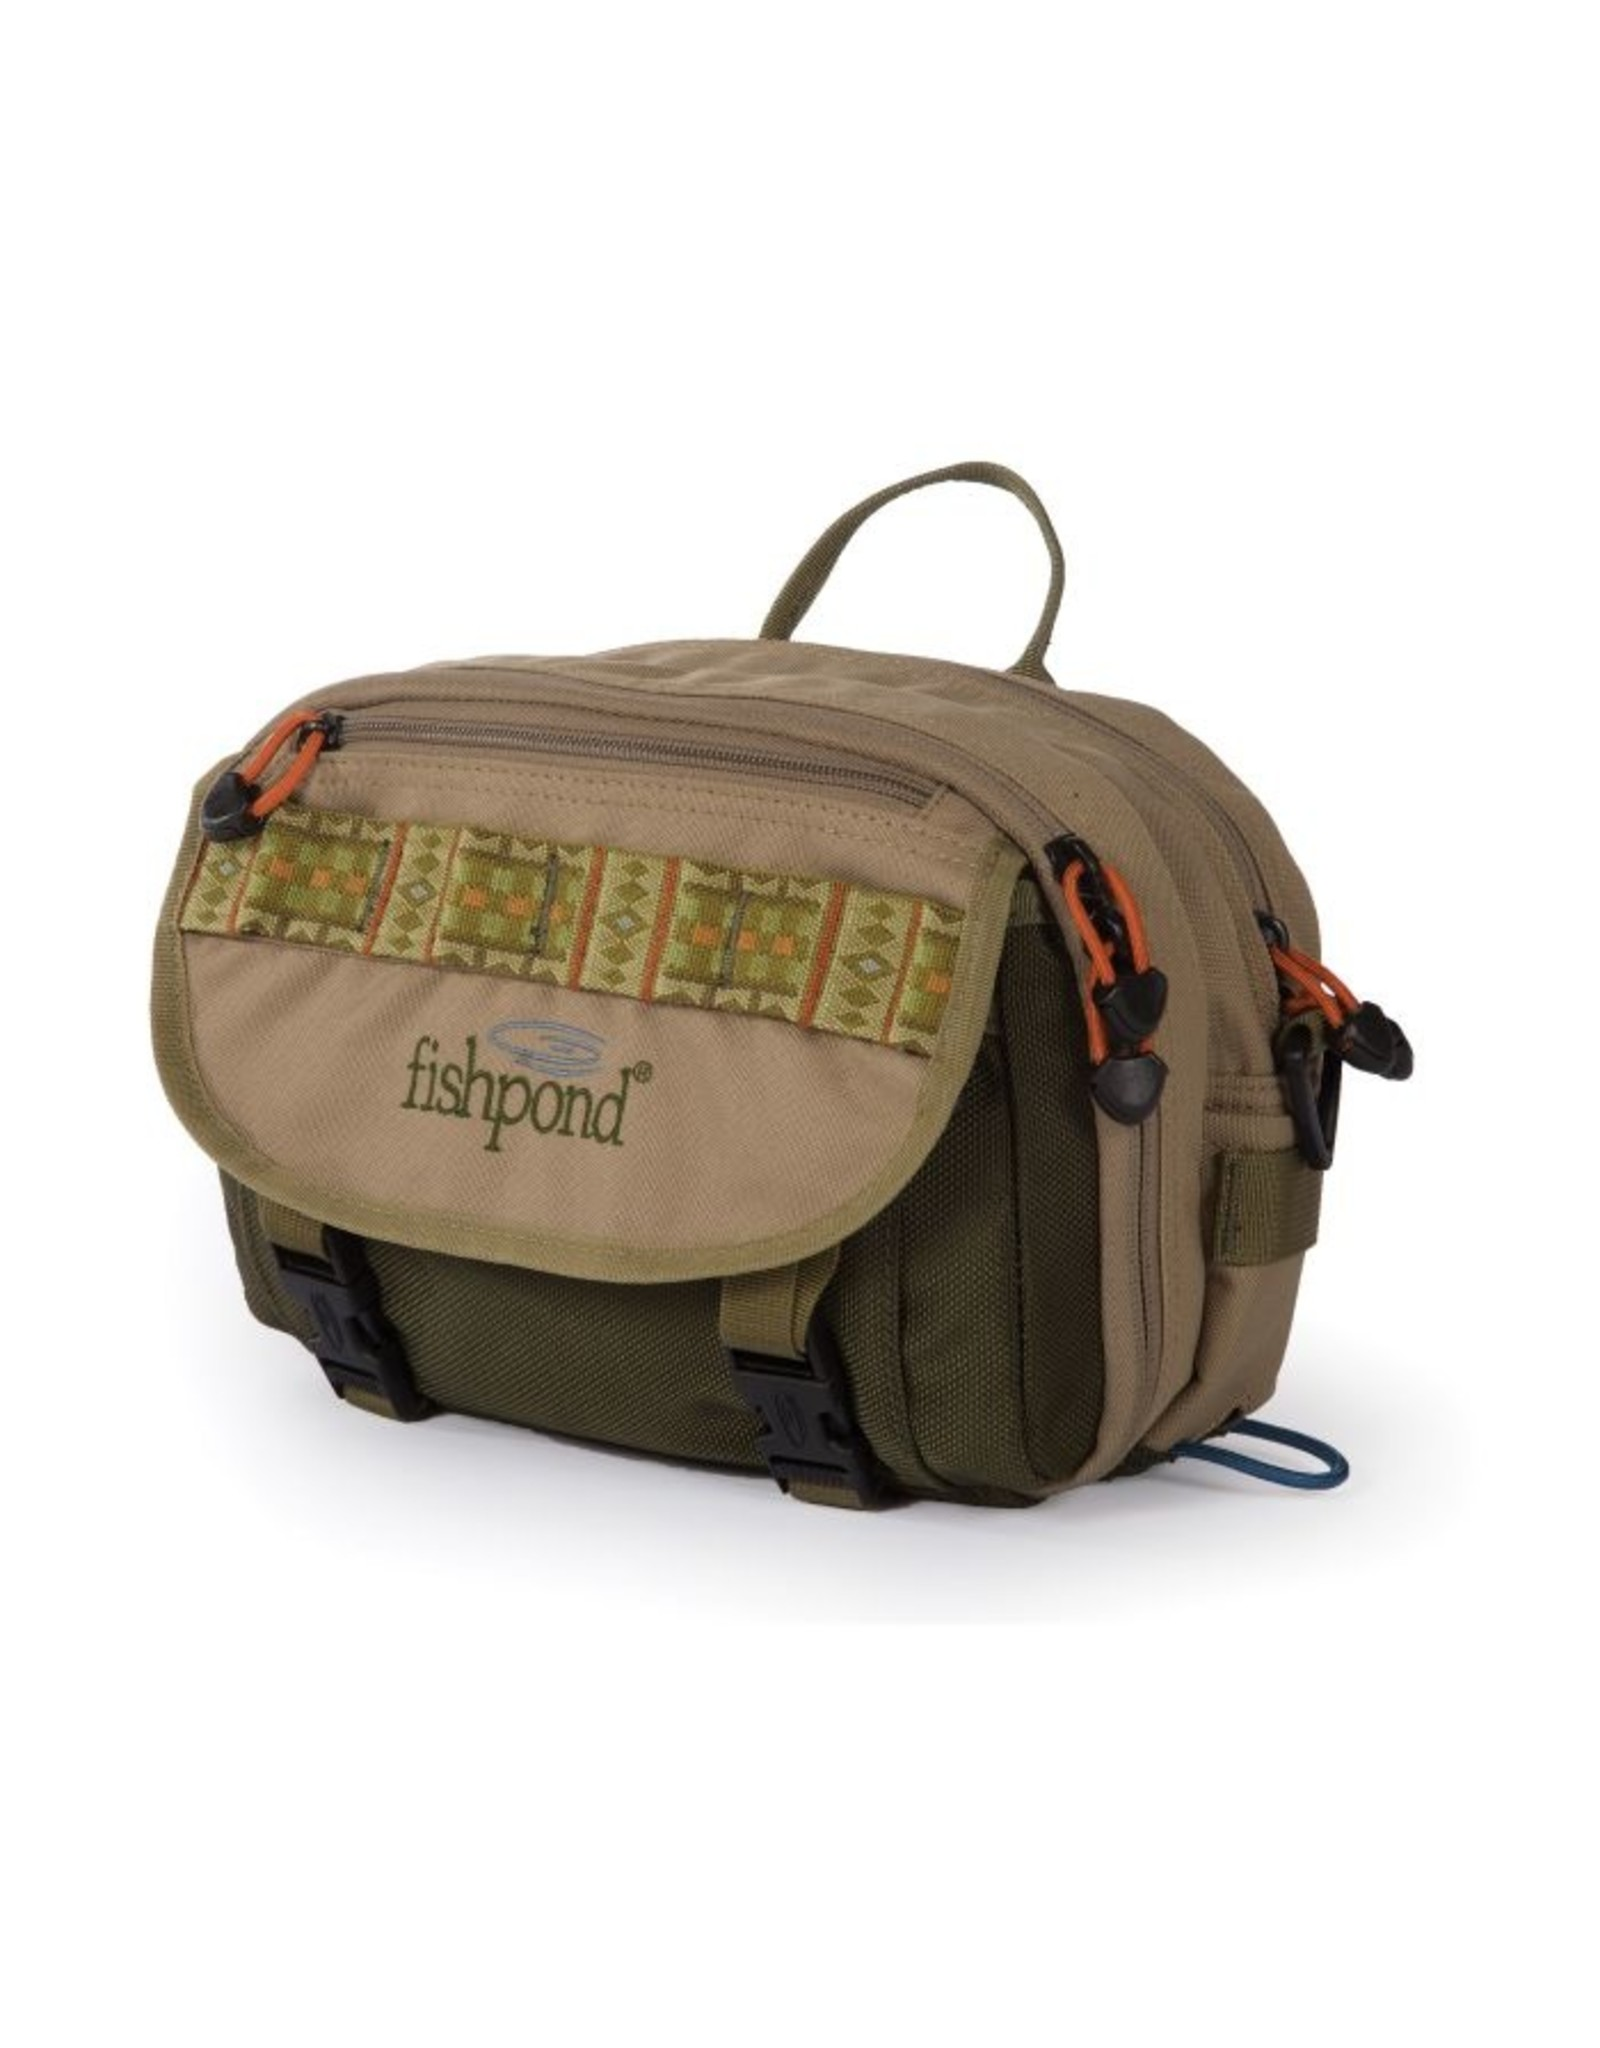 Fishpond Fishpond - Blue River Chest/Lumbar Pack